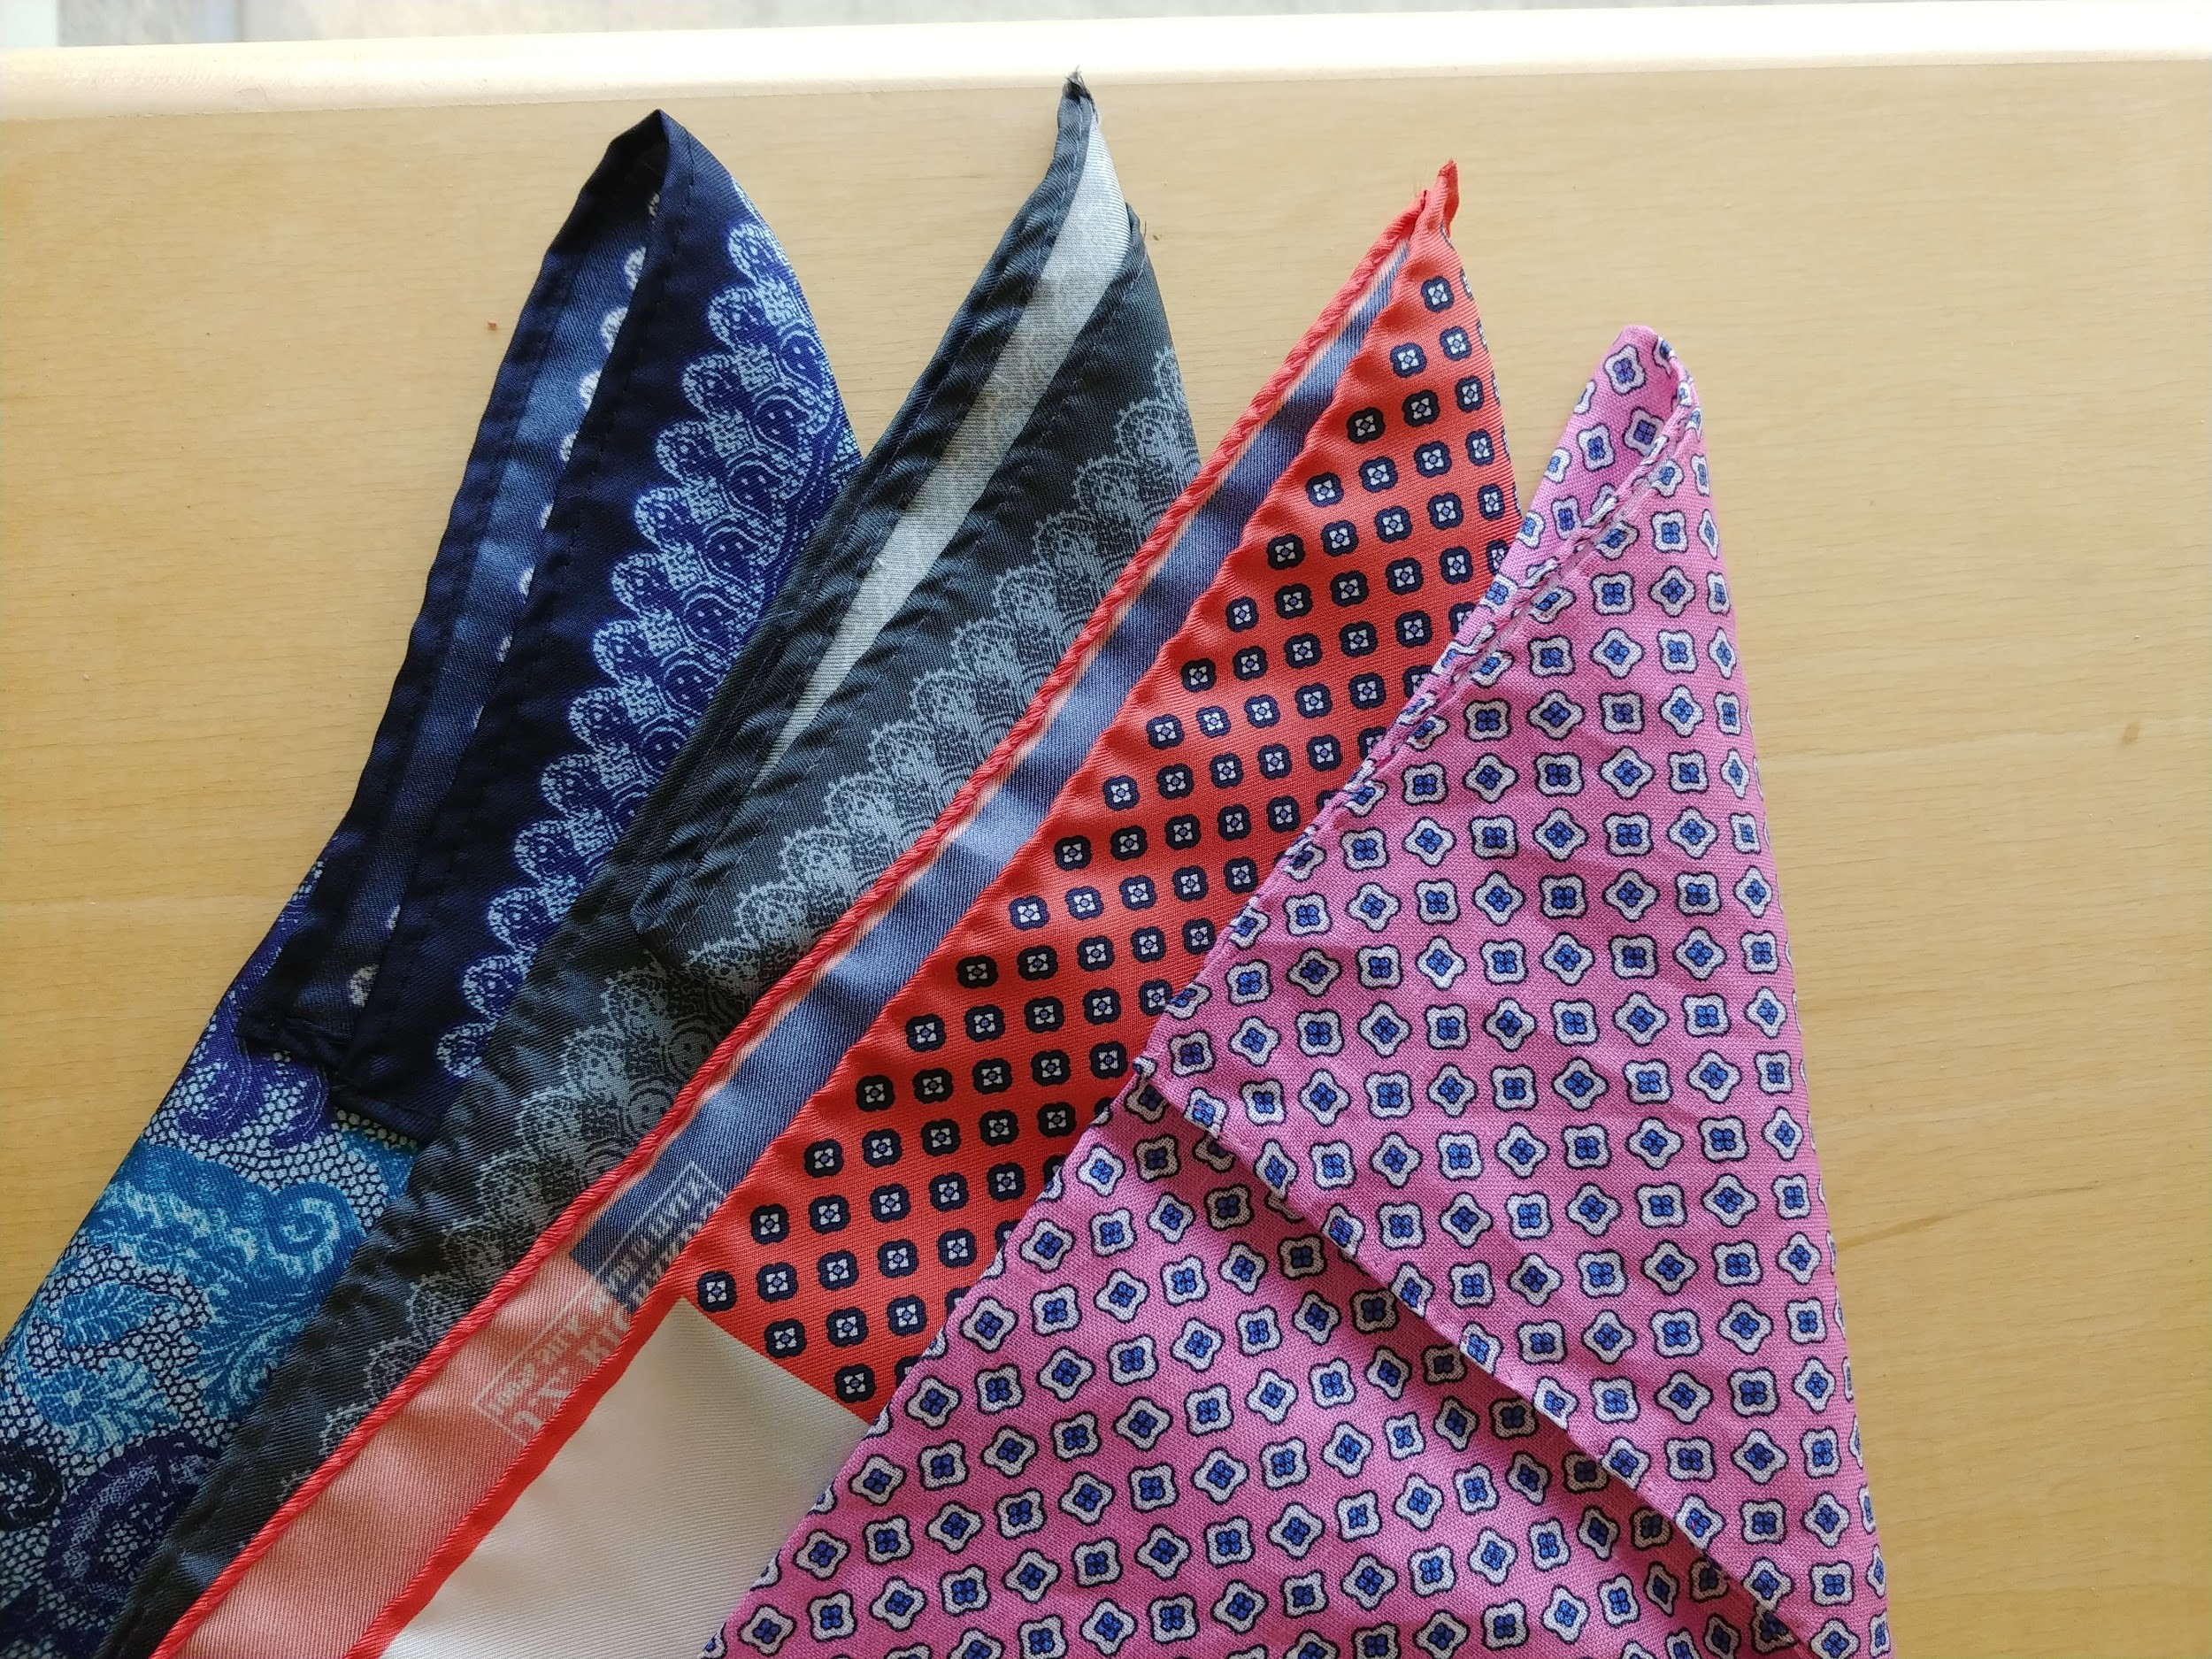 8d3de84c99ae3 Pocket squares can be a fun tool to use when wearing your favorite worn in  suit. Also, you are able to style them in different ways with fun folds to  try ...